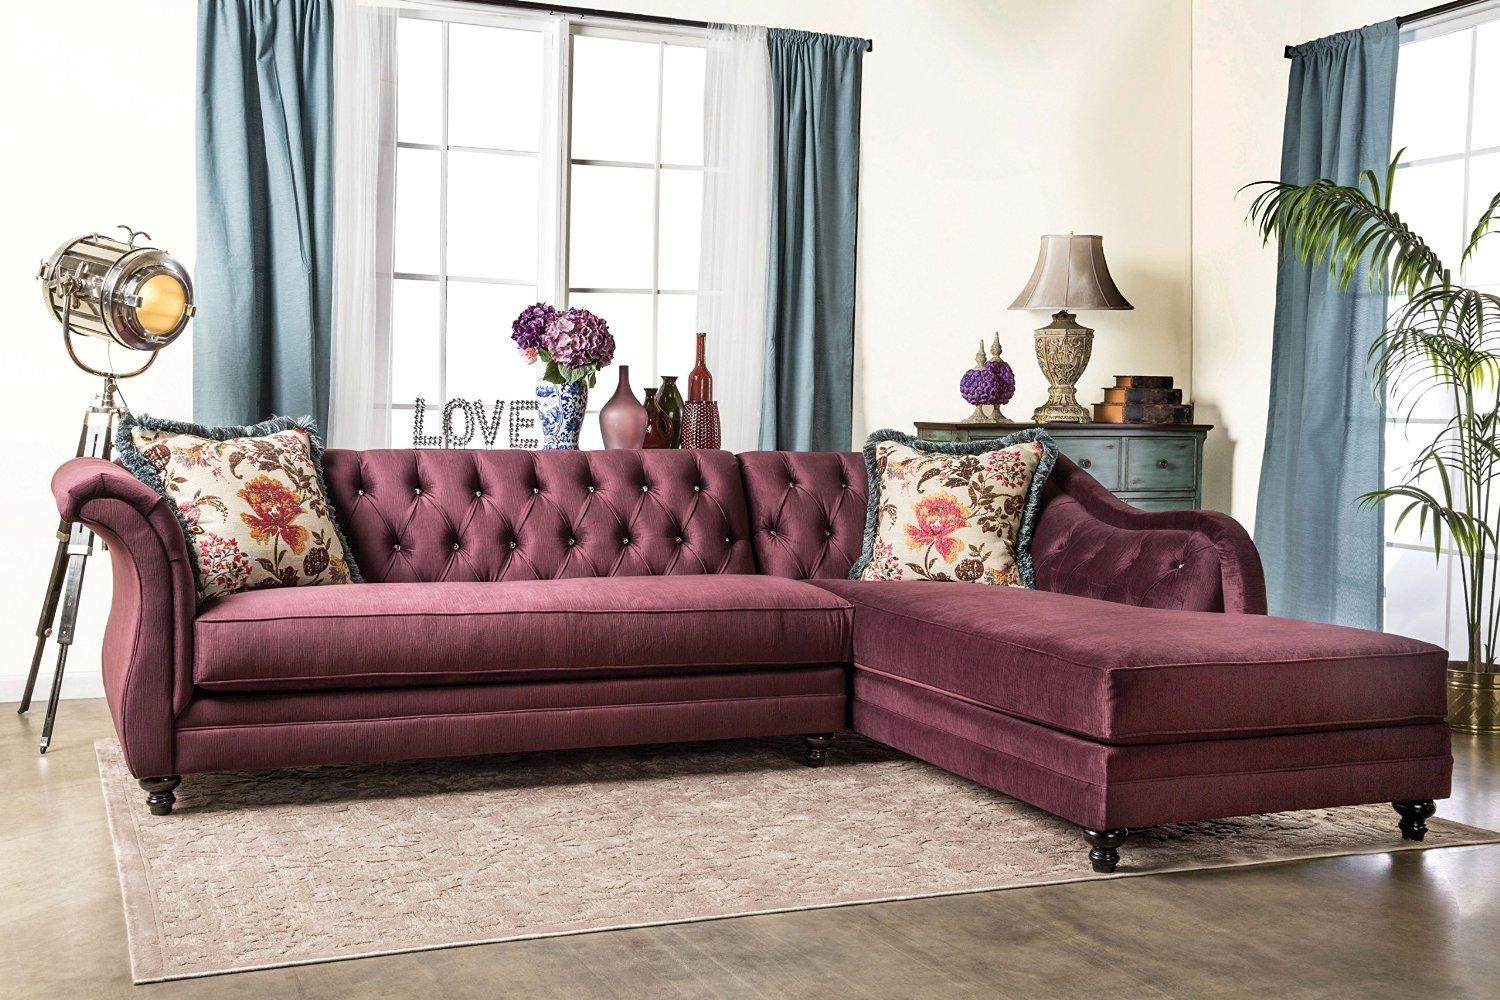 25 Best Chesterfield Sofas To Buy In 2017 Inside Tufted Sectional Sofa With Chaise (Image 1 of 20)